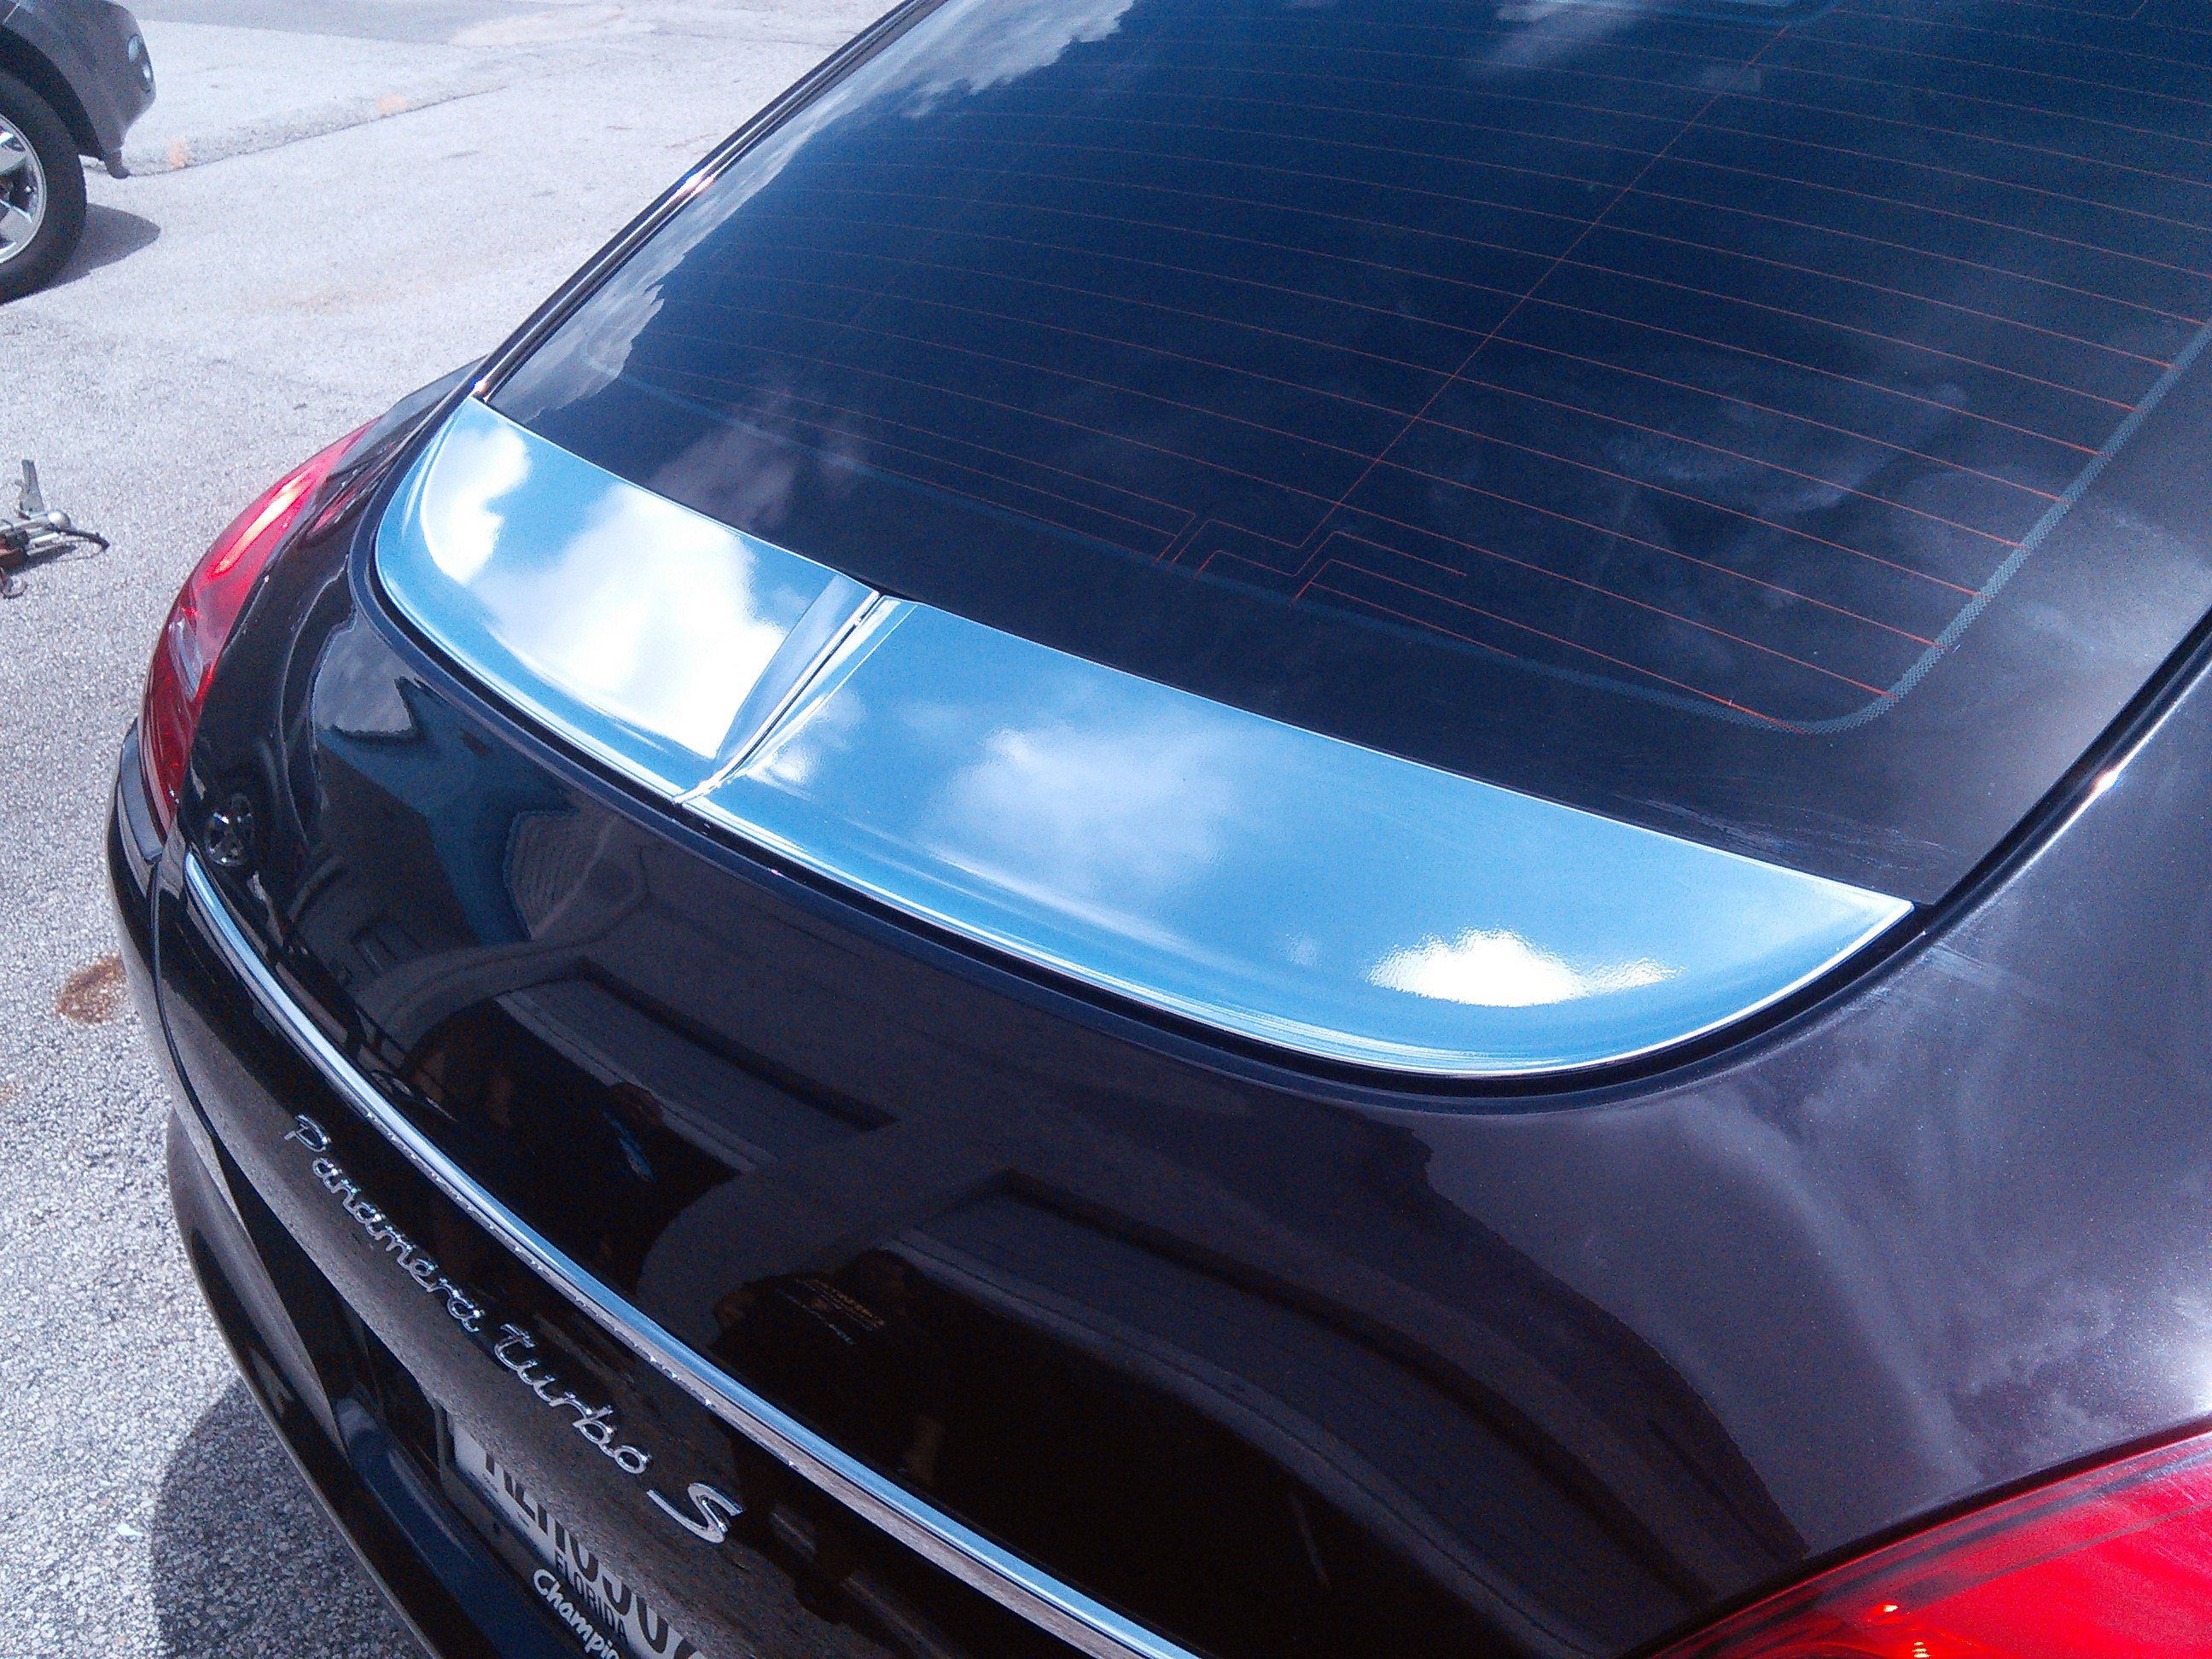 Porsche Panamera Miami Chrome Vinyl Wrapped Rear Spoiler Amp Front Lower Spoiler